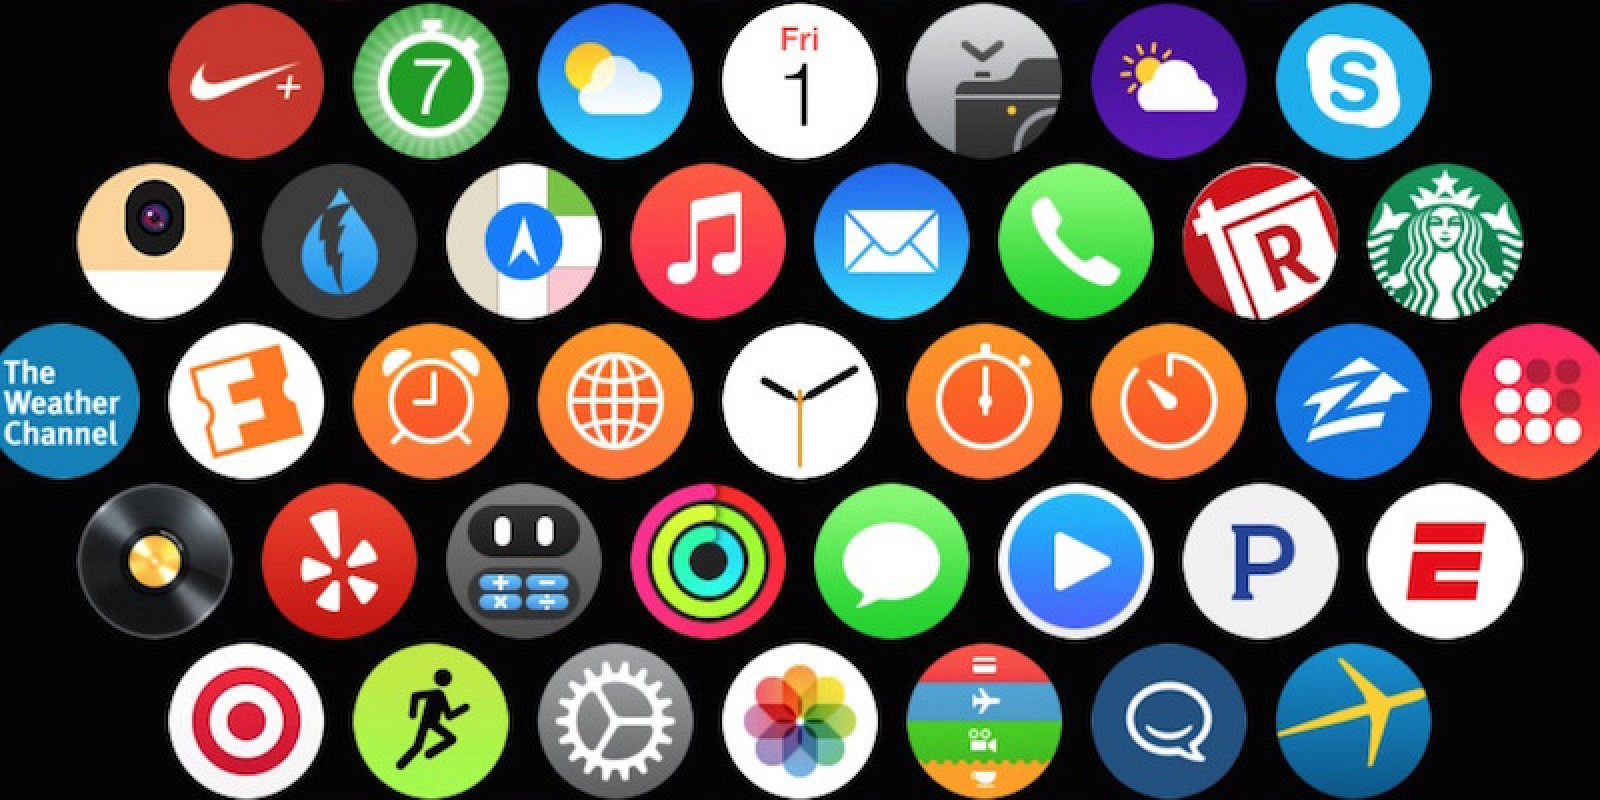 How to Download, Install, and Arrange Apps on Apple Watch